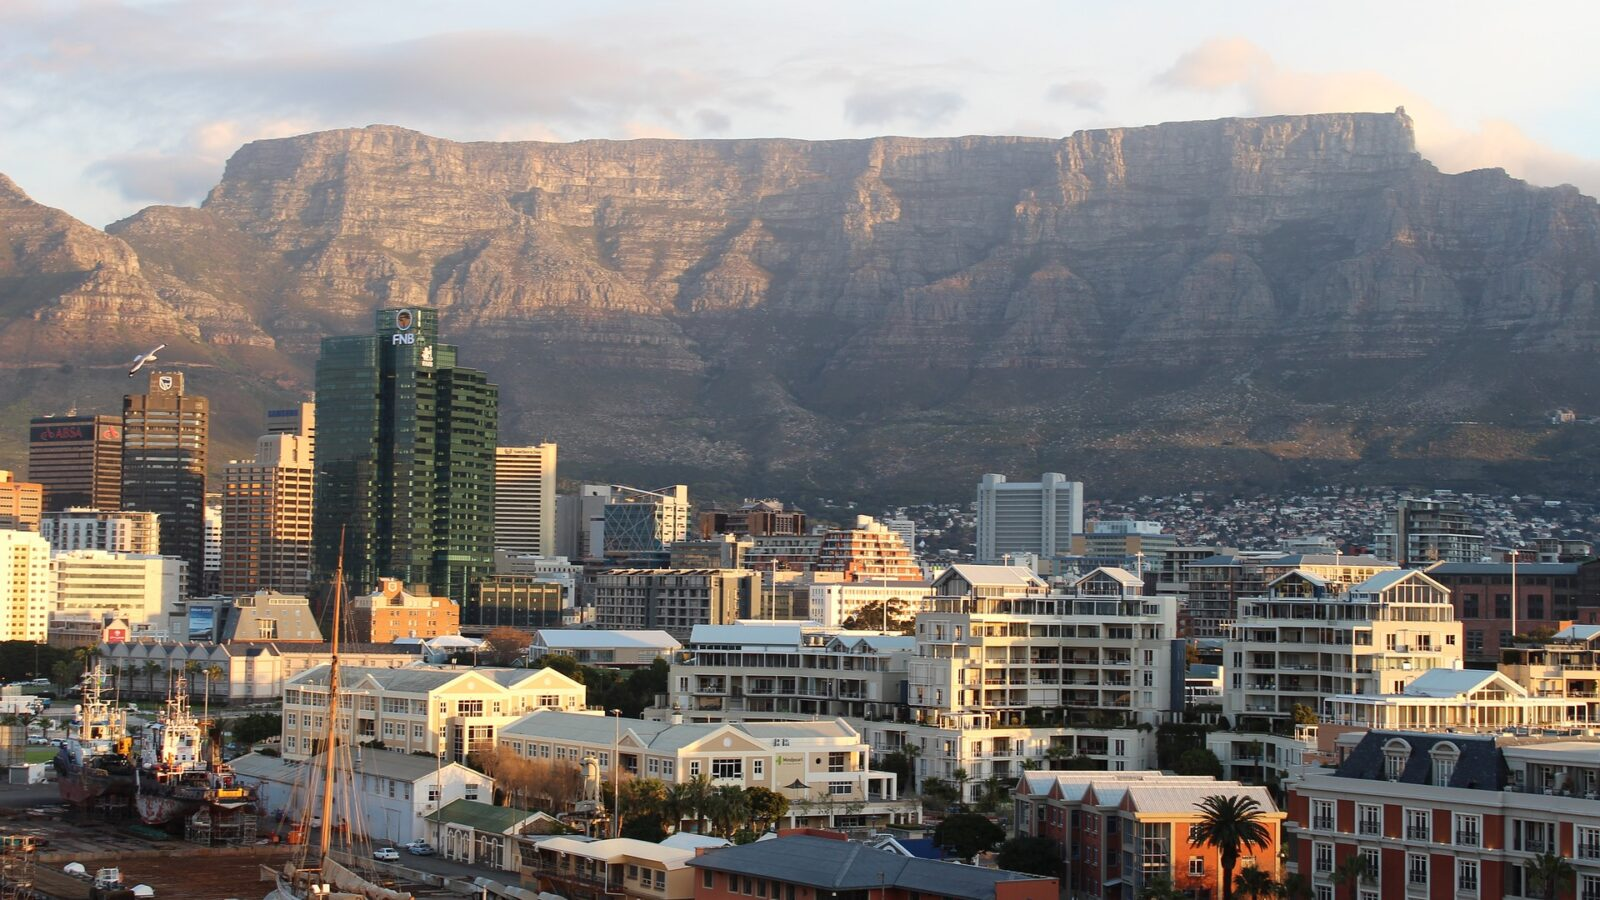 Image of Table Mountain Cape Town South Africa